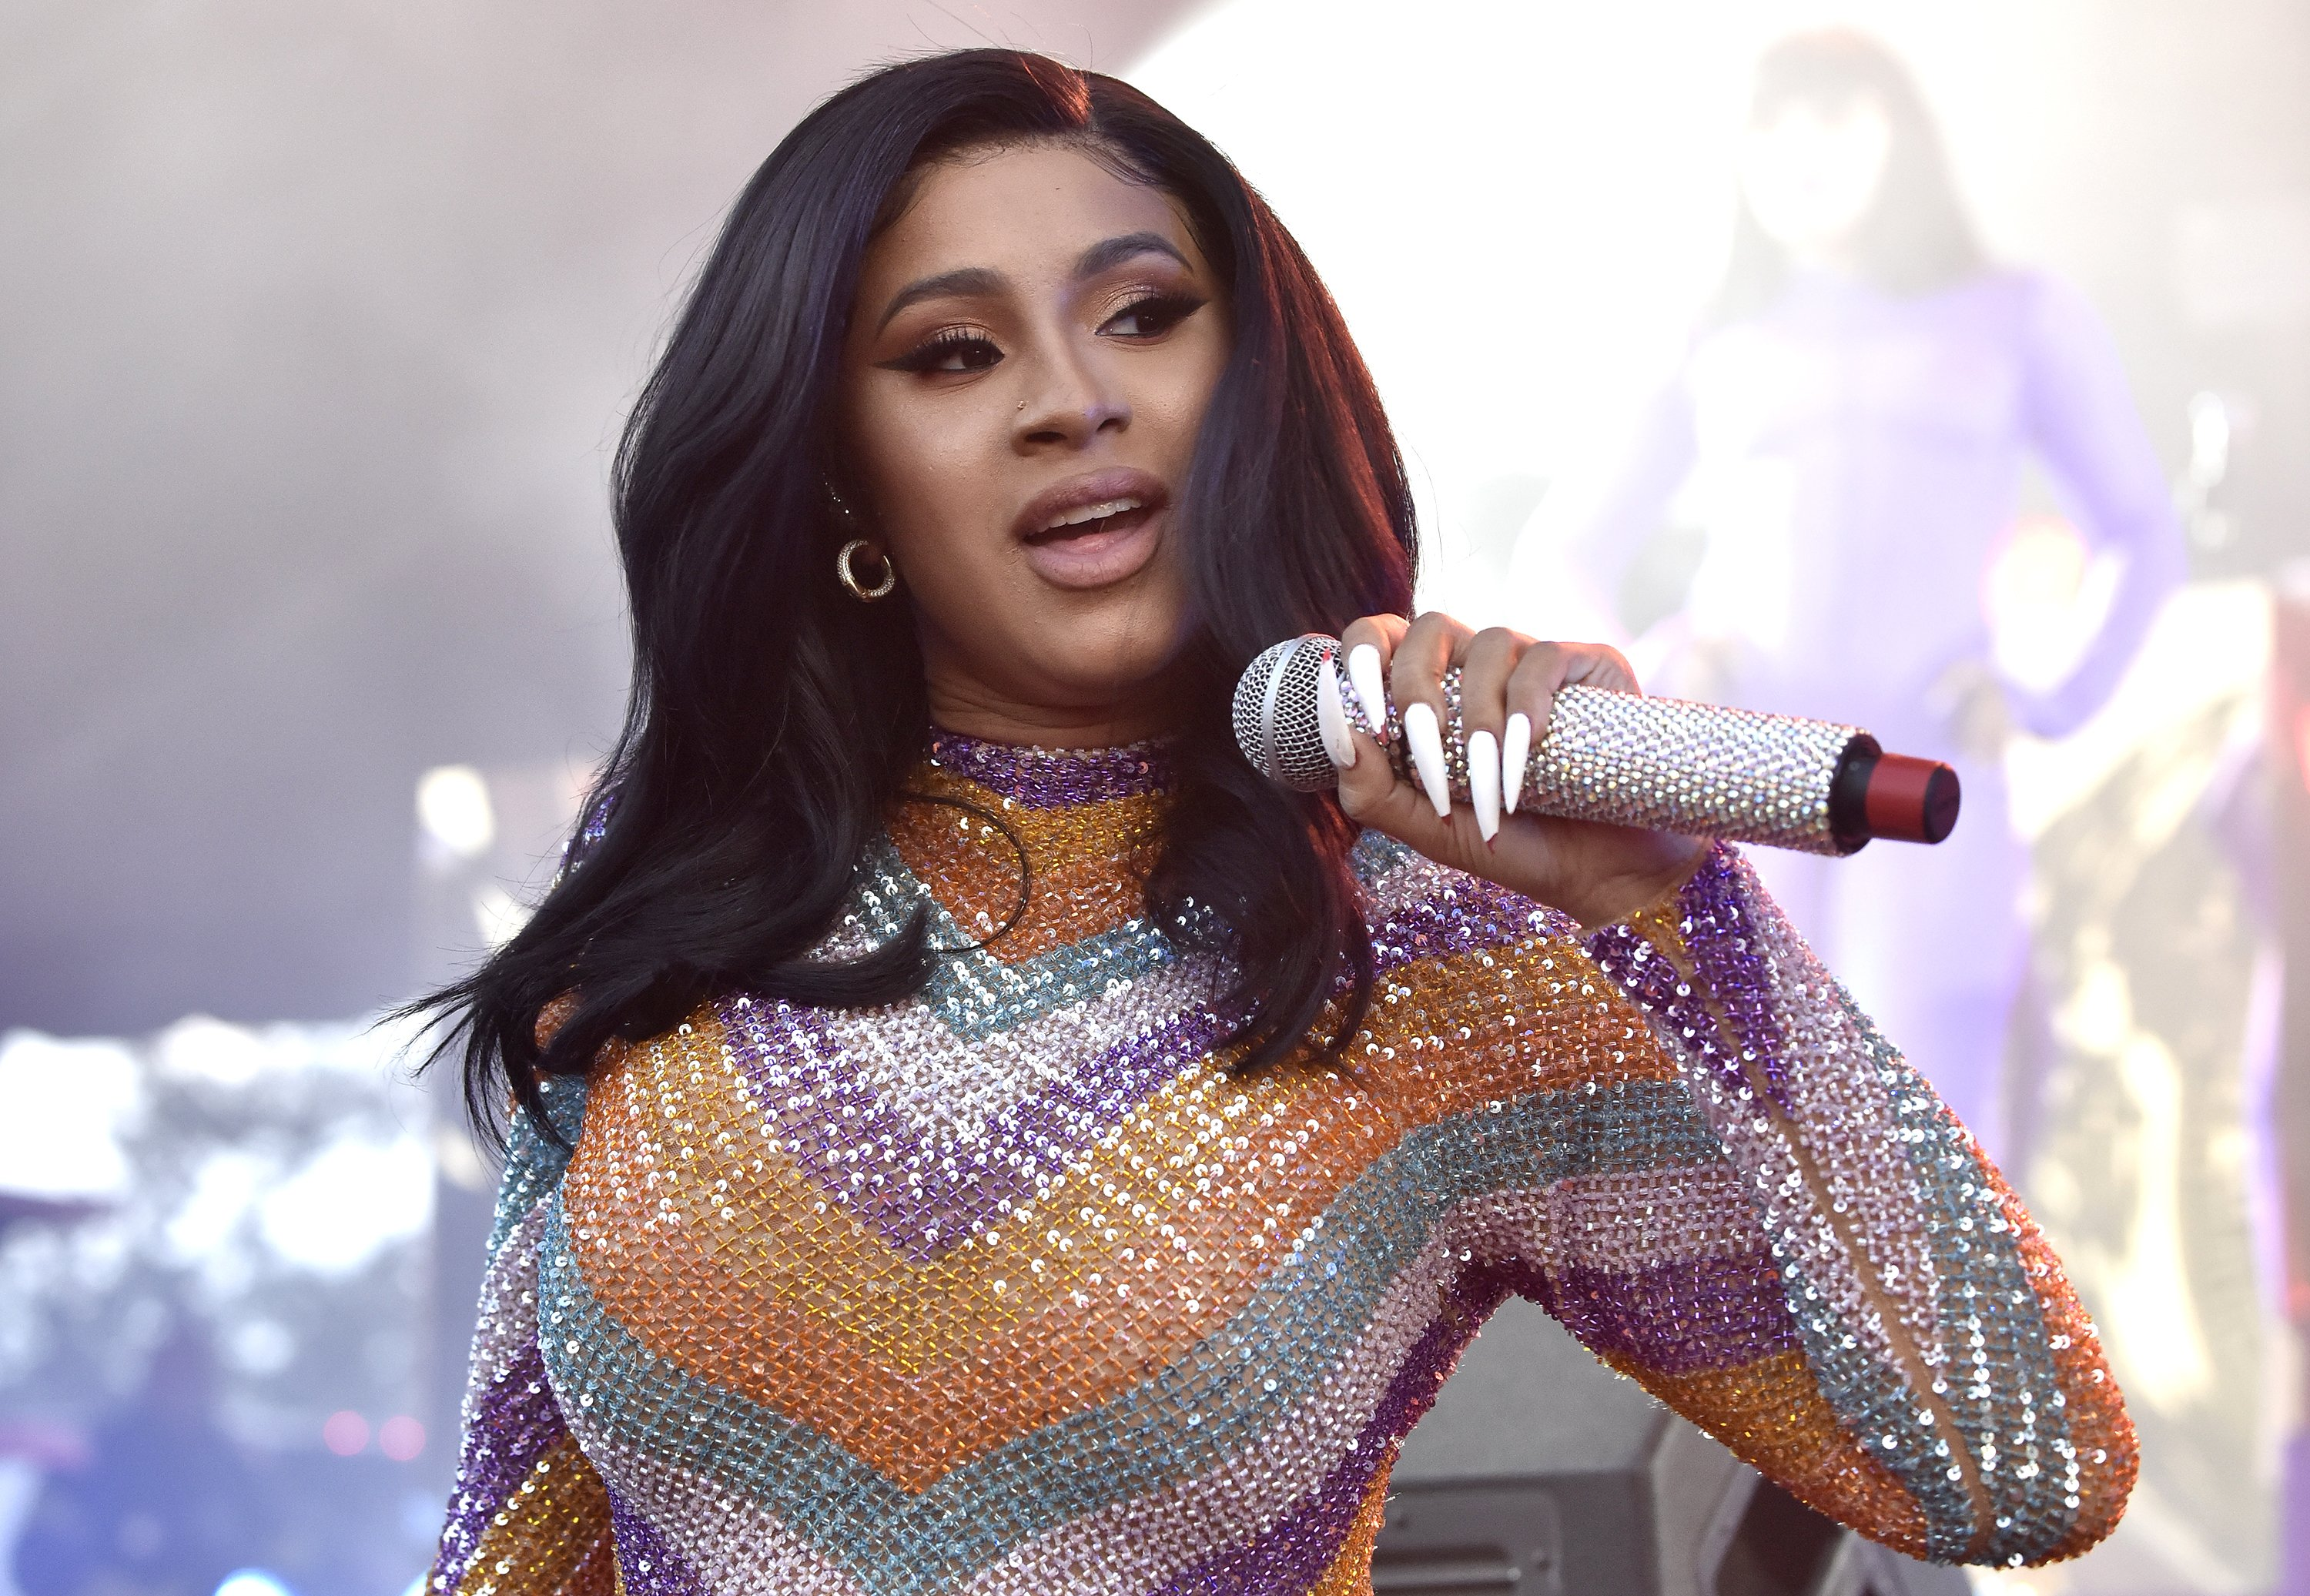 Cardi B performs at the 2019 Bonnaroo Music & Arts Festival on June 16, 2019 in Manchester, Tennessee.|Source: Getty Images